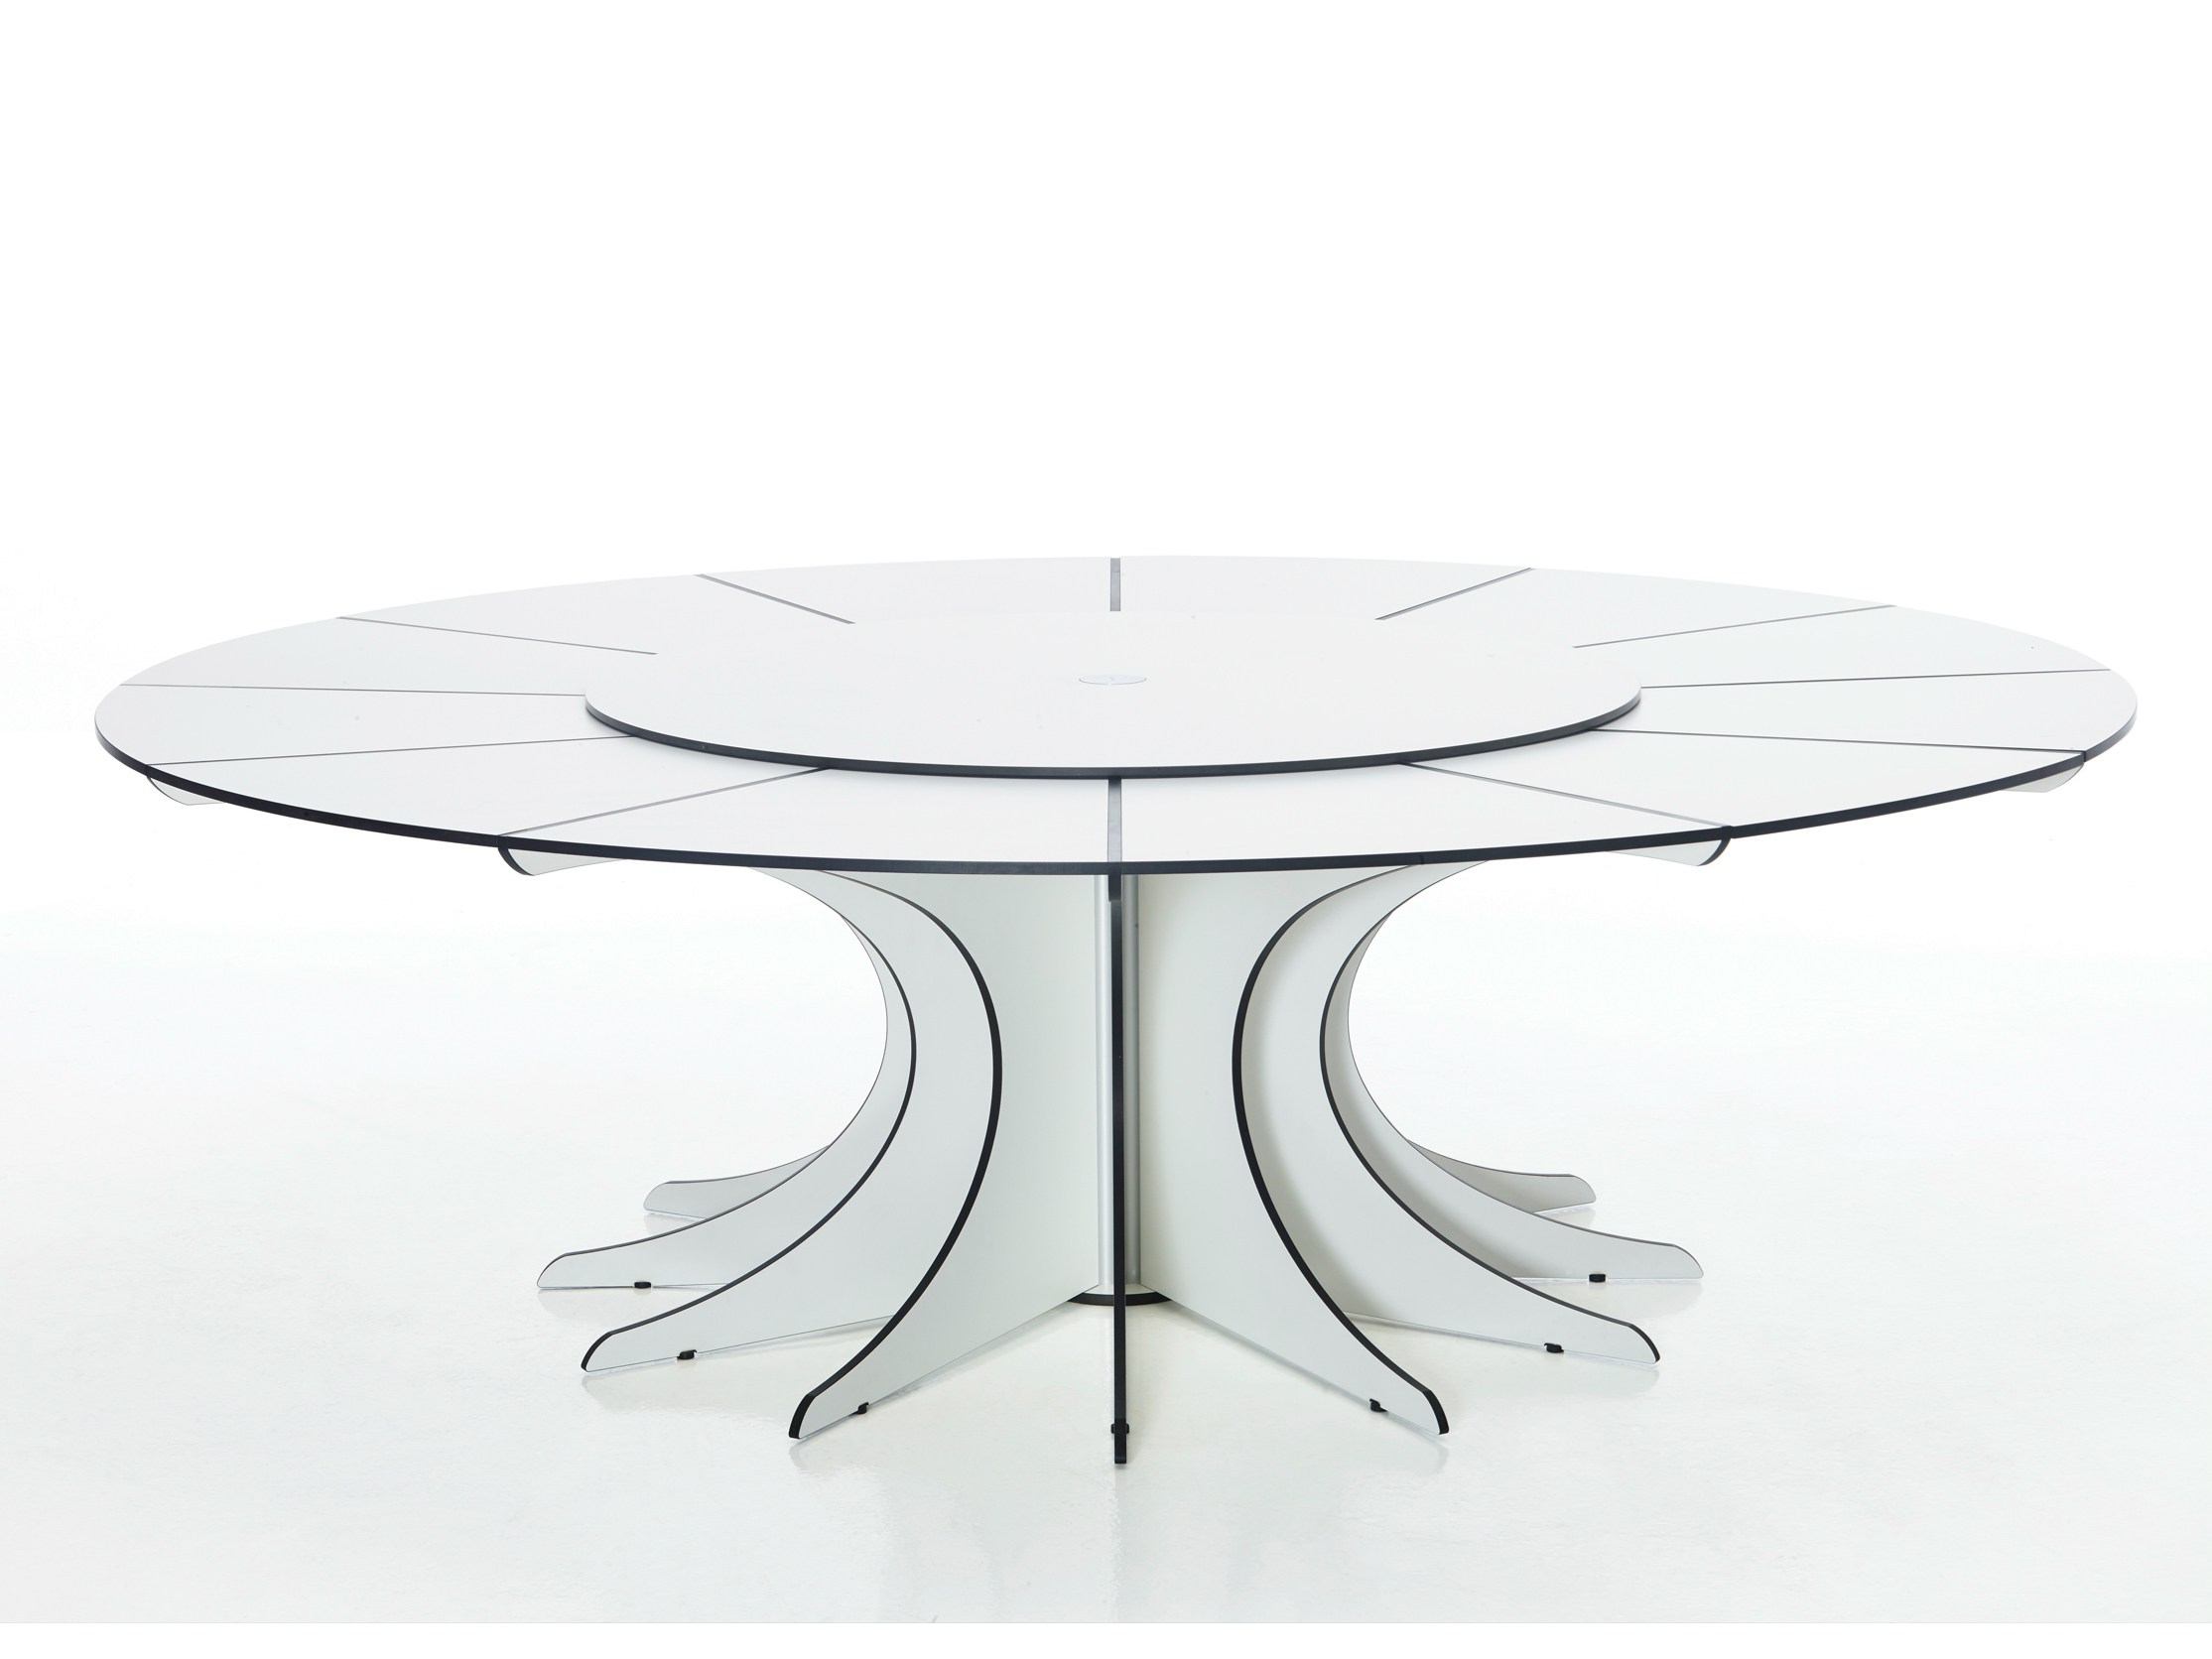 Table de jardin ronde arthur by extremis design dirk wynants for Table ronde design 8 personnes